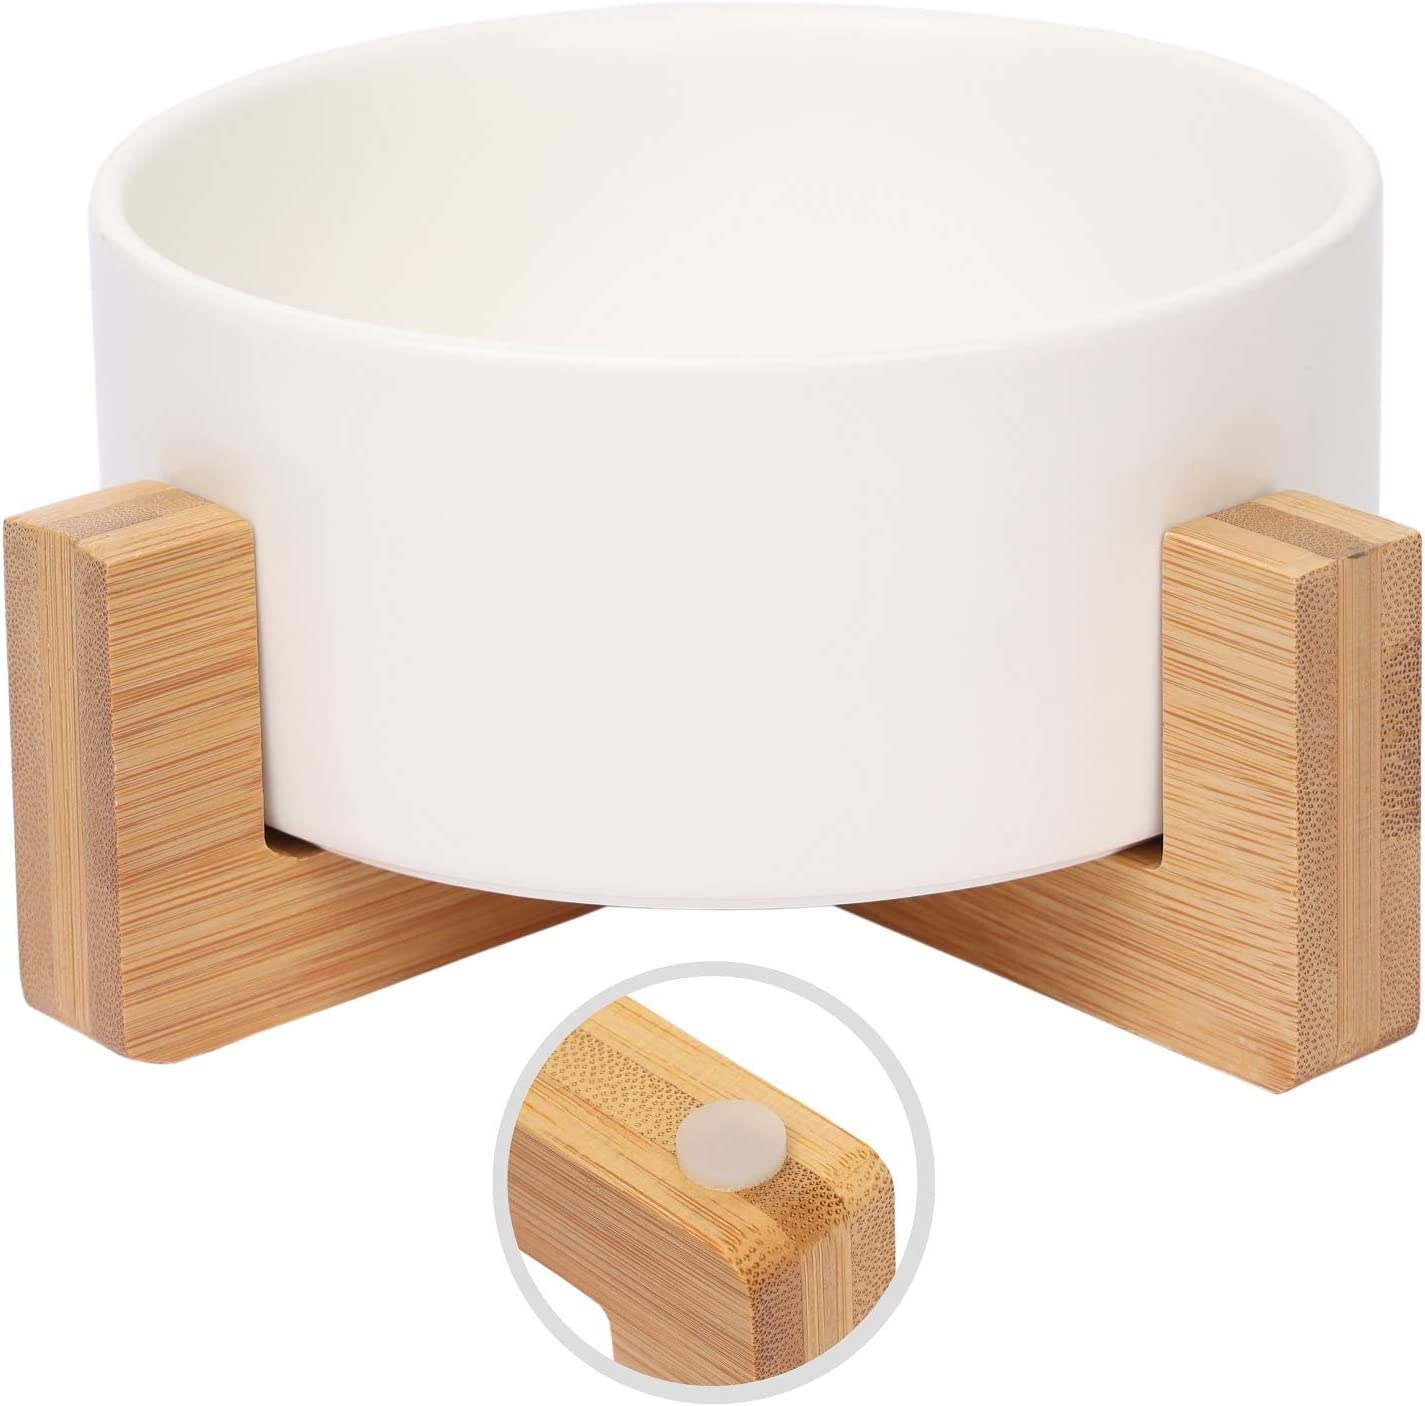 Olsa Ceramic Cat Dog Bowl with Anti-Slip Bamboo Stand, Round Dog Food Bowl, Elevated Cat Dog Bowls, Large Capacity Pet Bowl, Dog Food and Water Bowl for Dogs Cats, Easy to Clean, Holds 30 Ounces